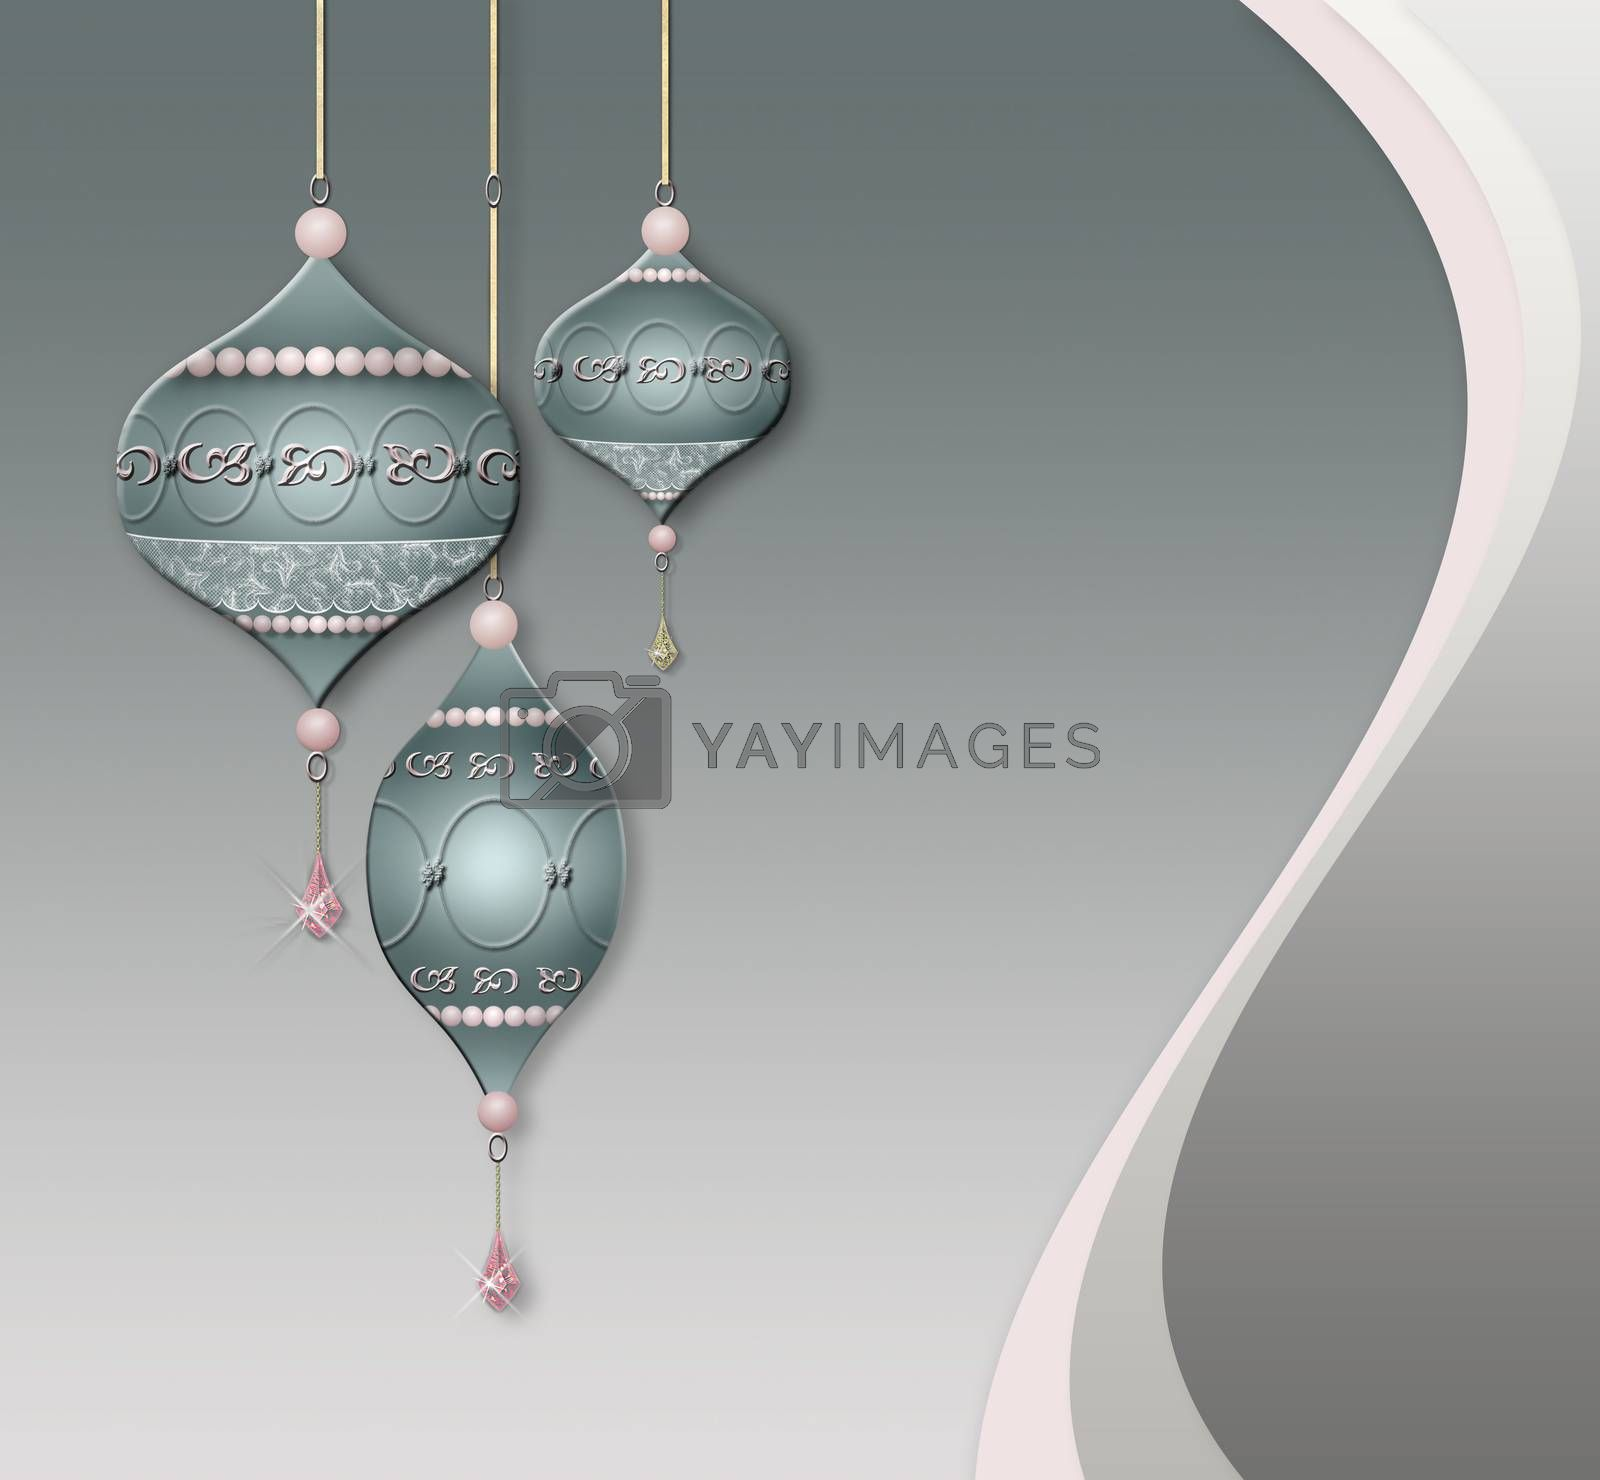 Luxury Xmas jewelry baubles balls for card, invitation, header print and web design on pastel background. 3D illustration